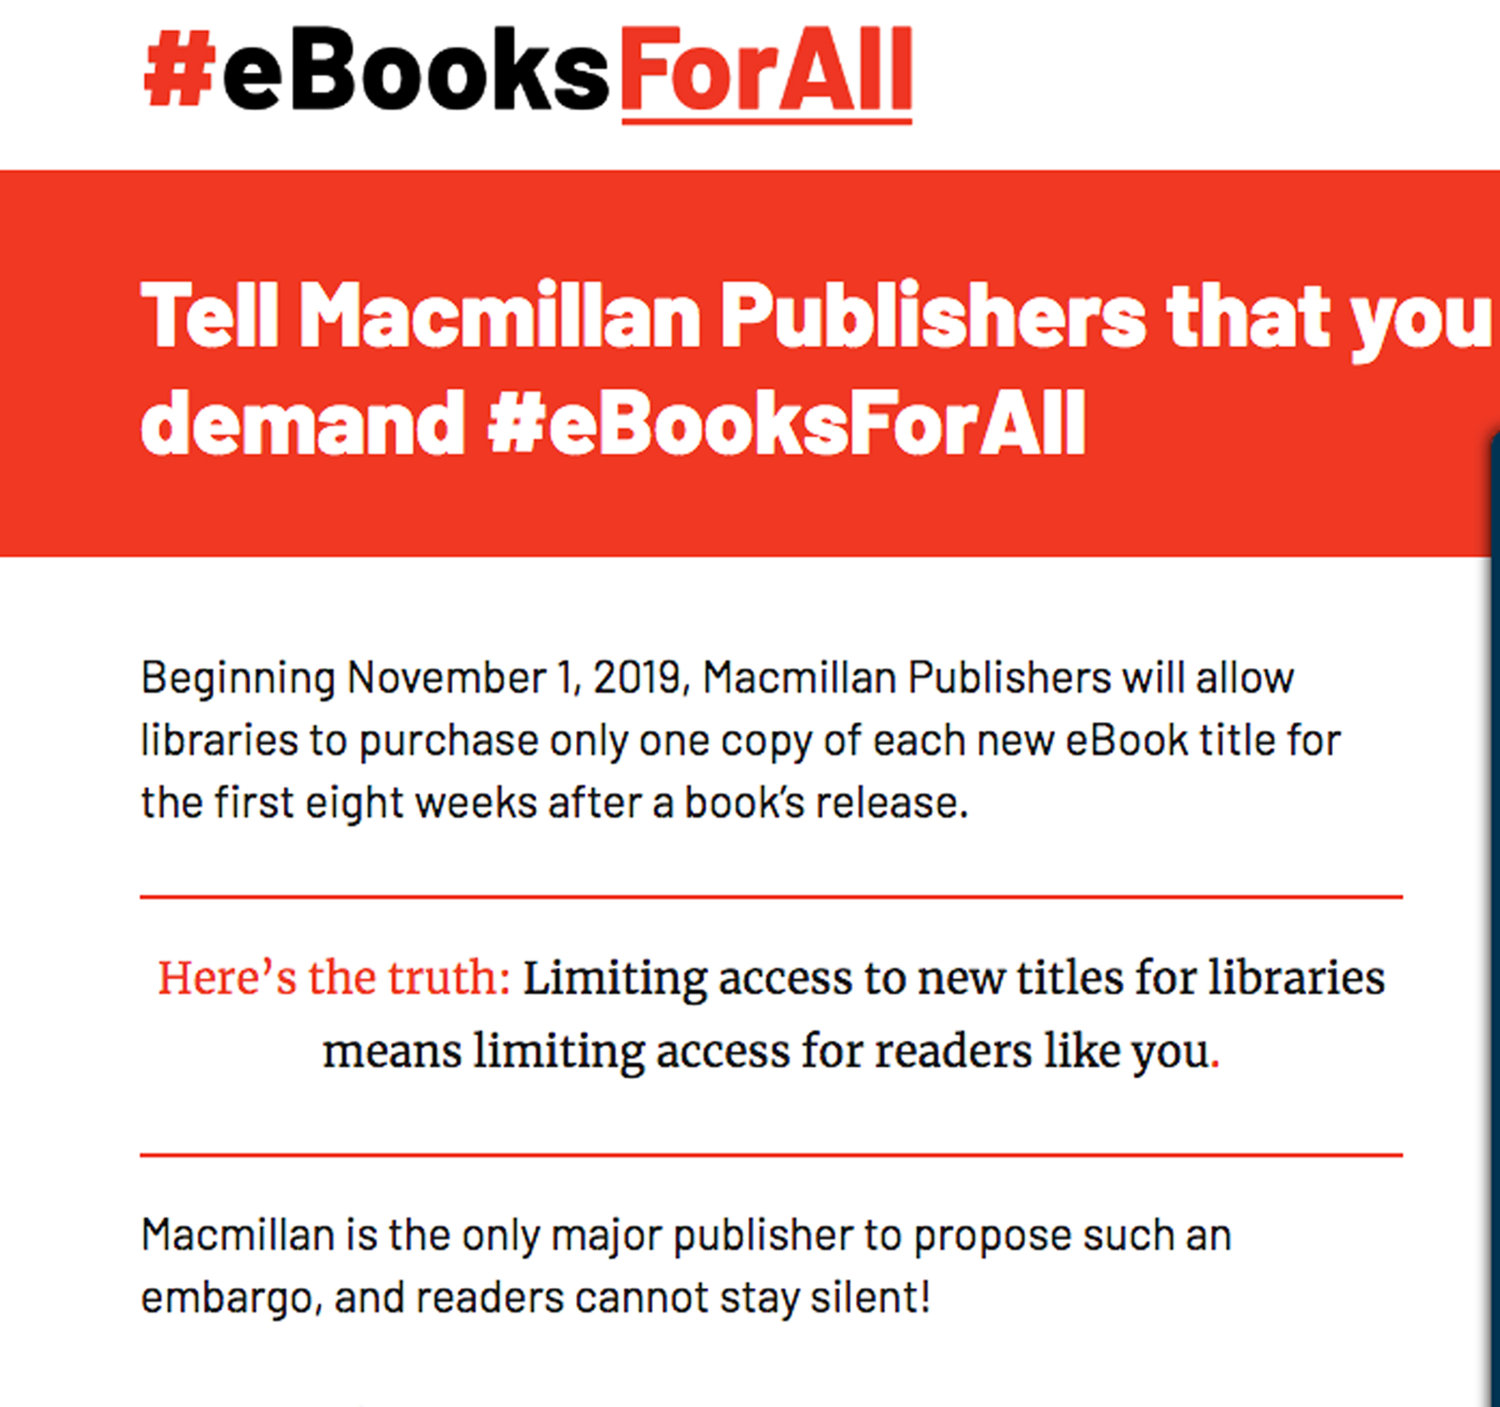 Macmillan Publishers announced a limit on eBook sales to all public libraries effective Nov. 1.